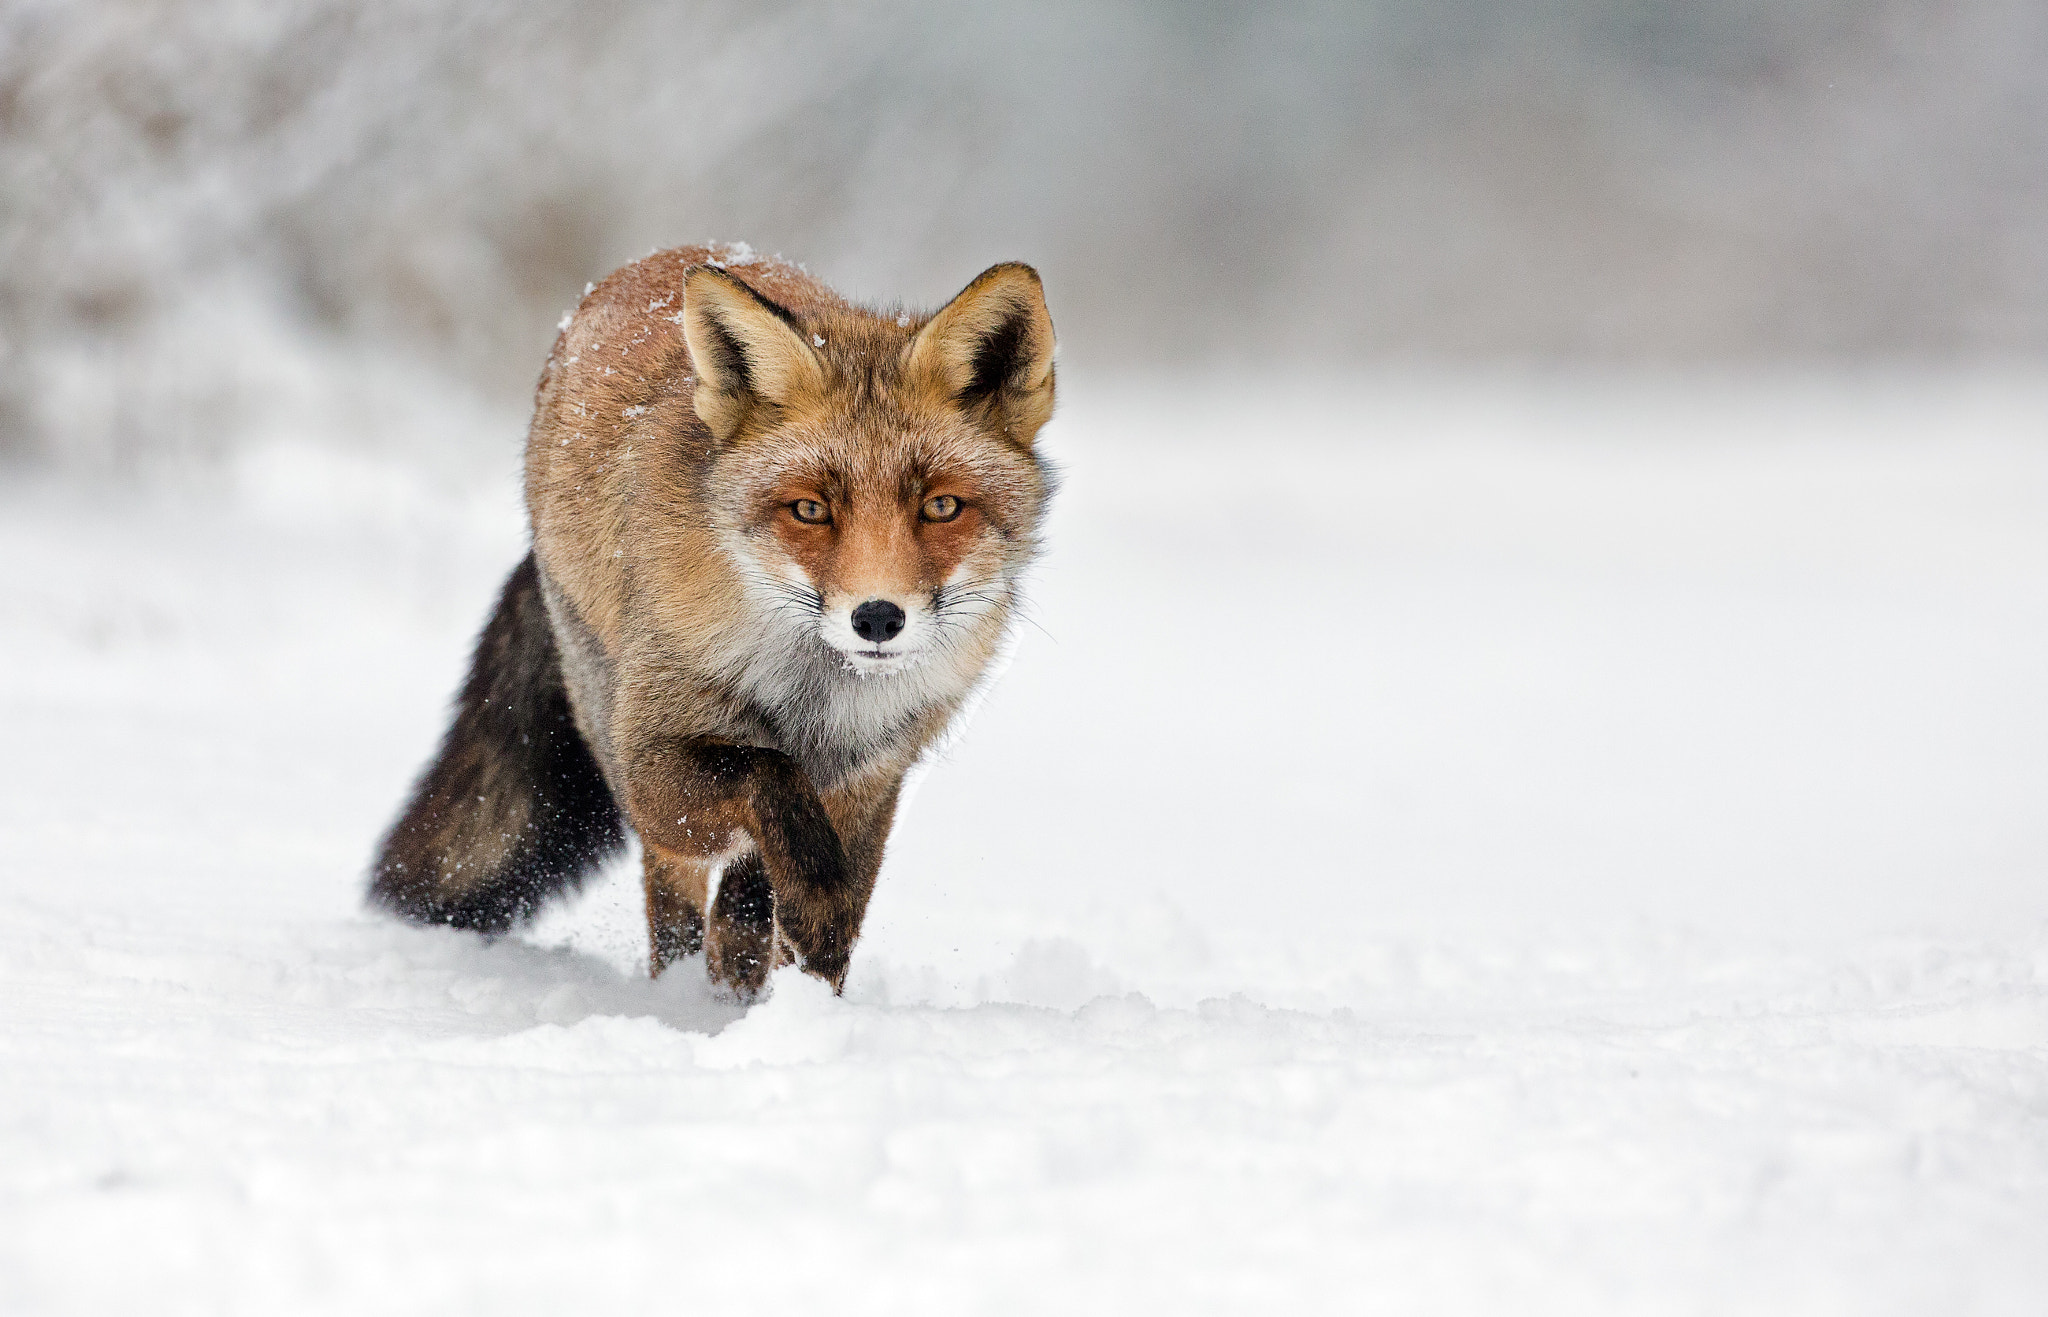 Photograph Red fox in winter landscape by Menno Schaefer on 500px